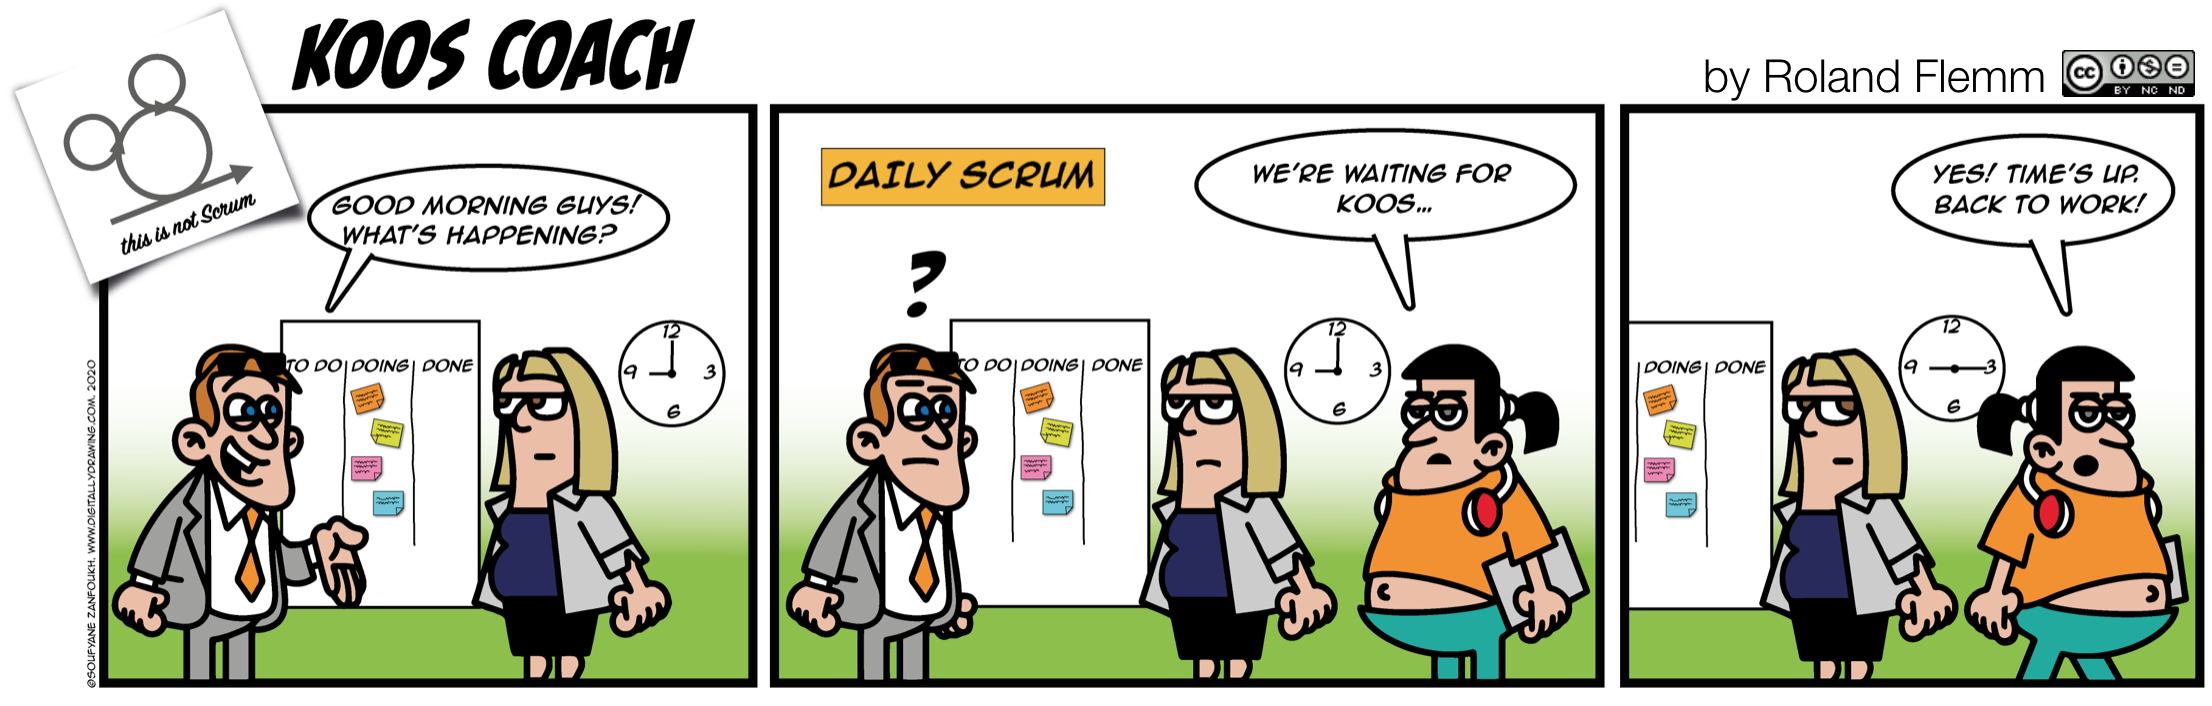 daily-scrum